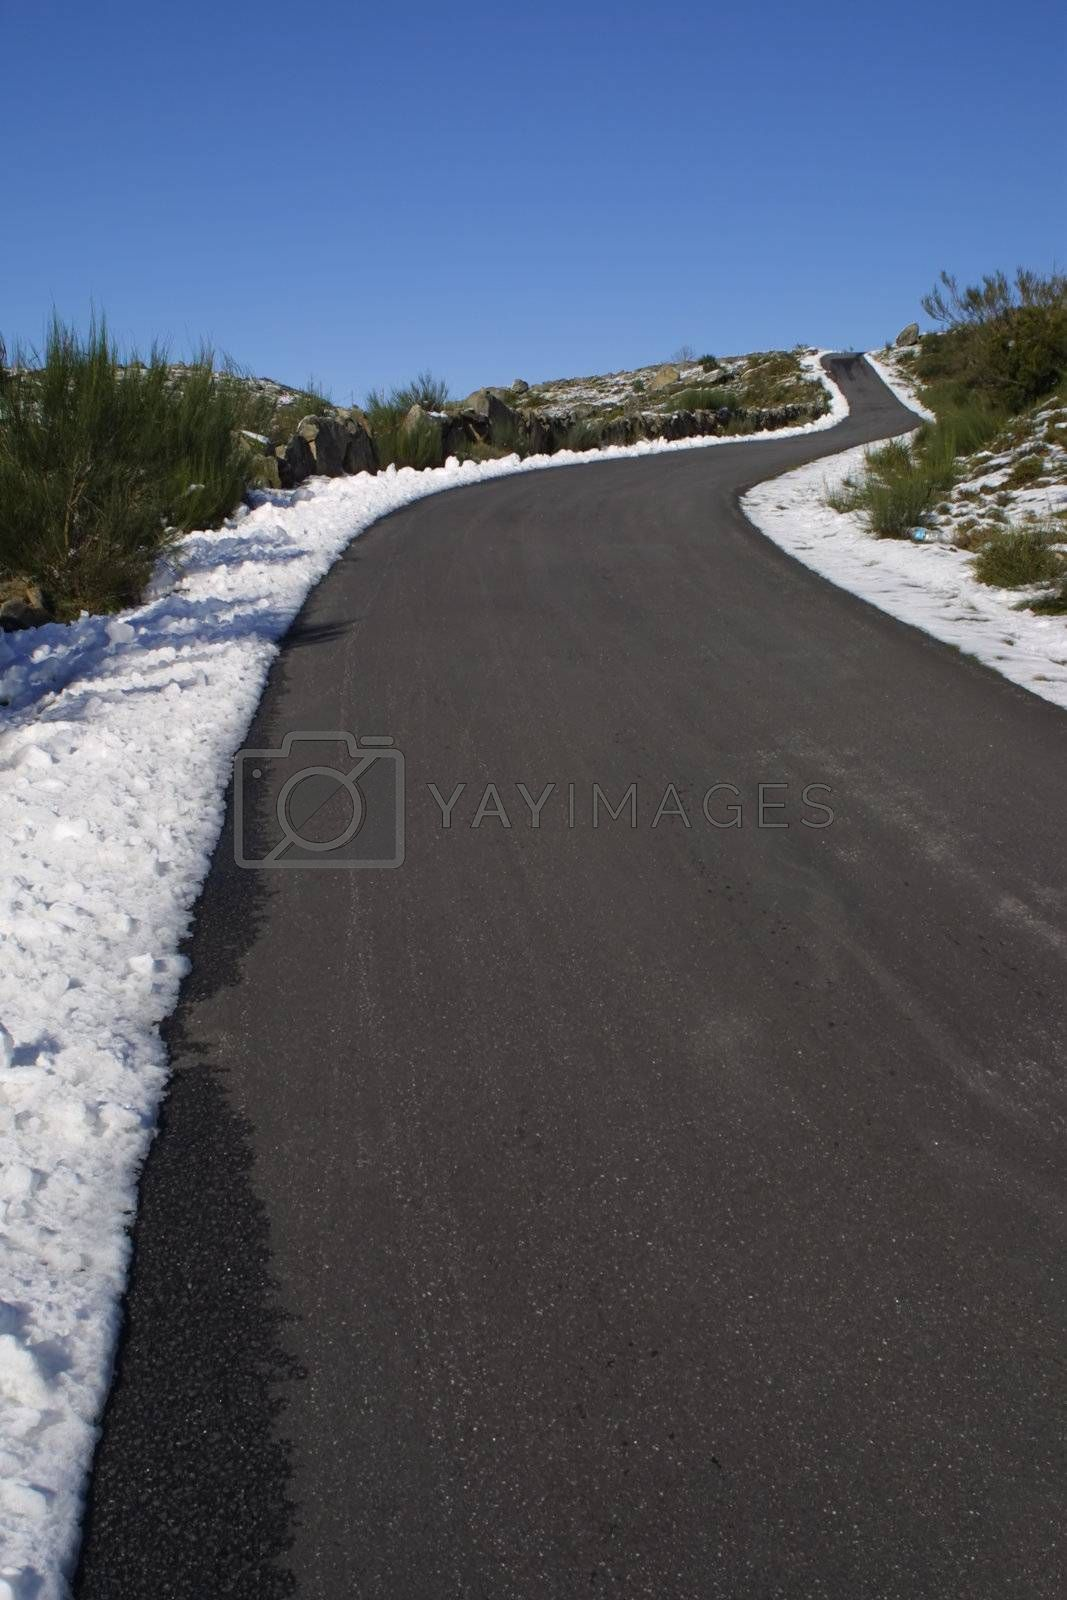 Tarmac road and blue sky